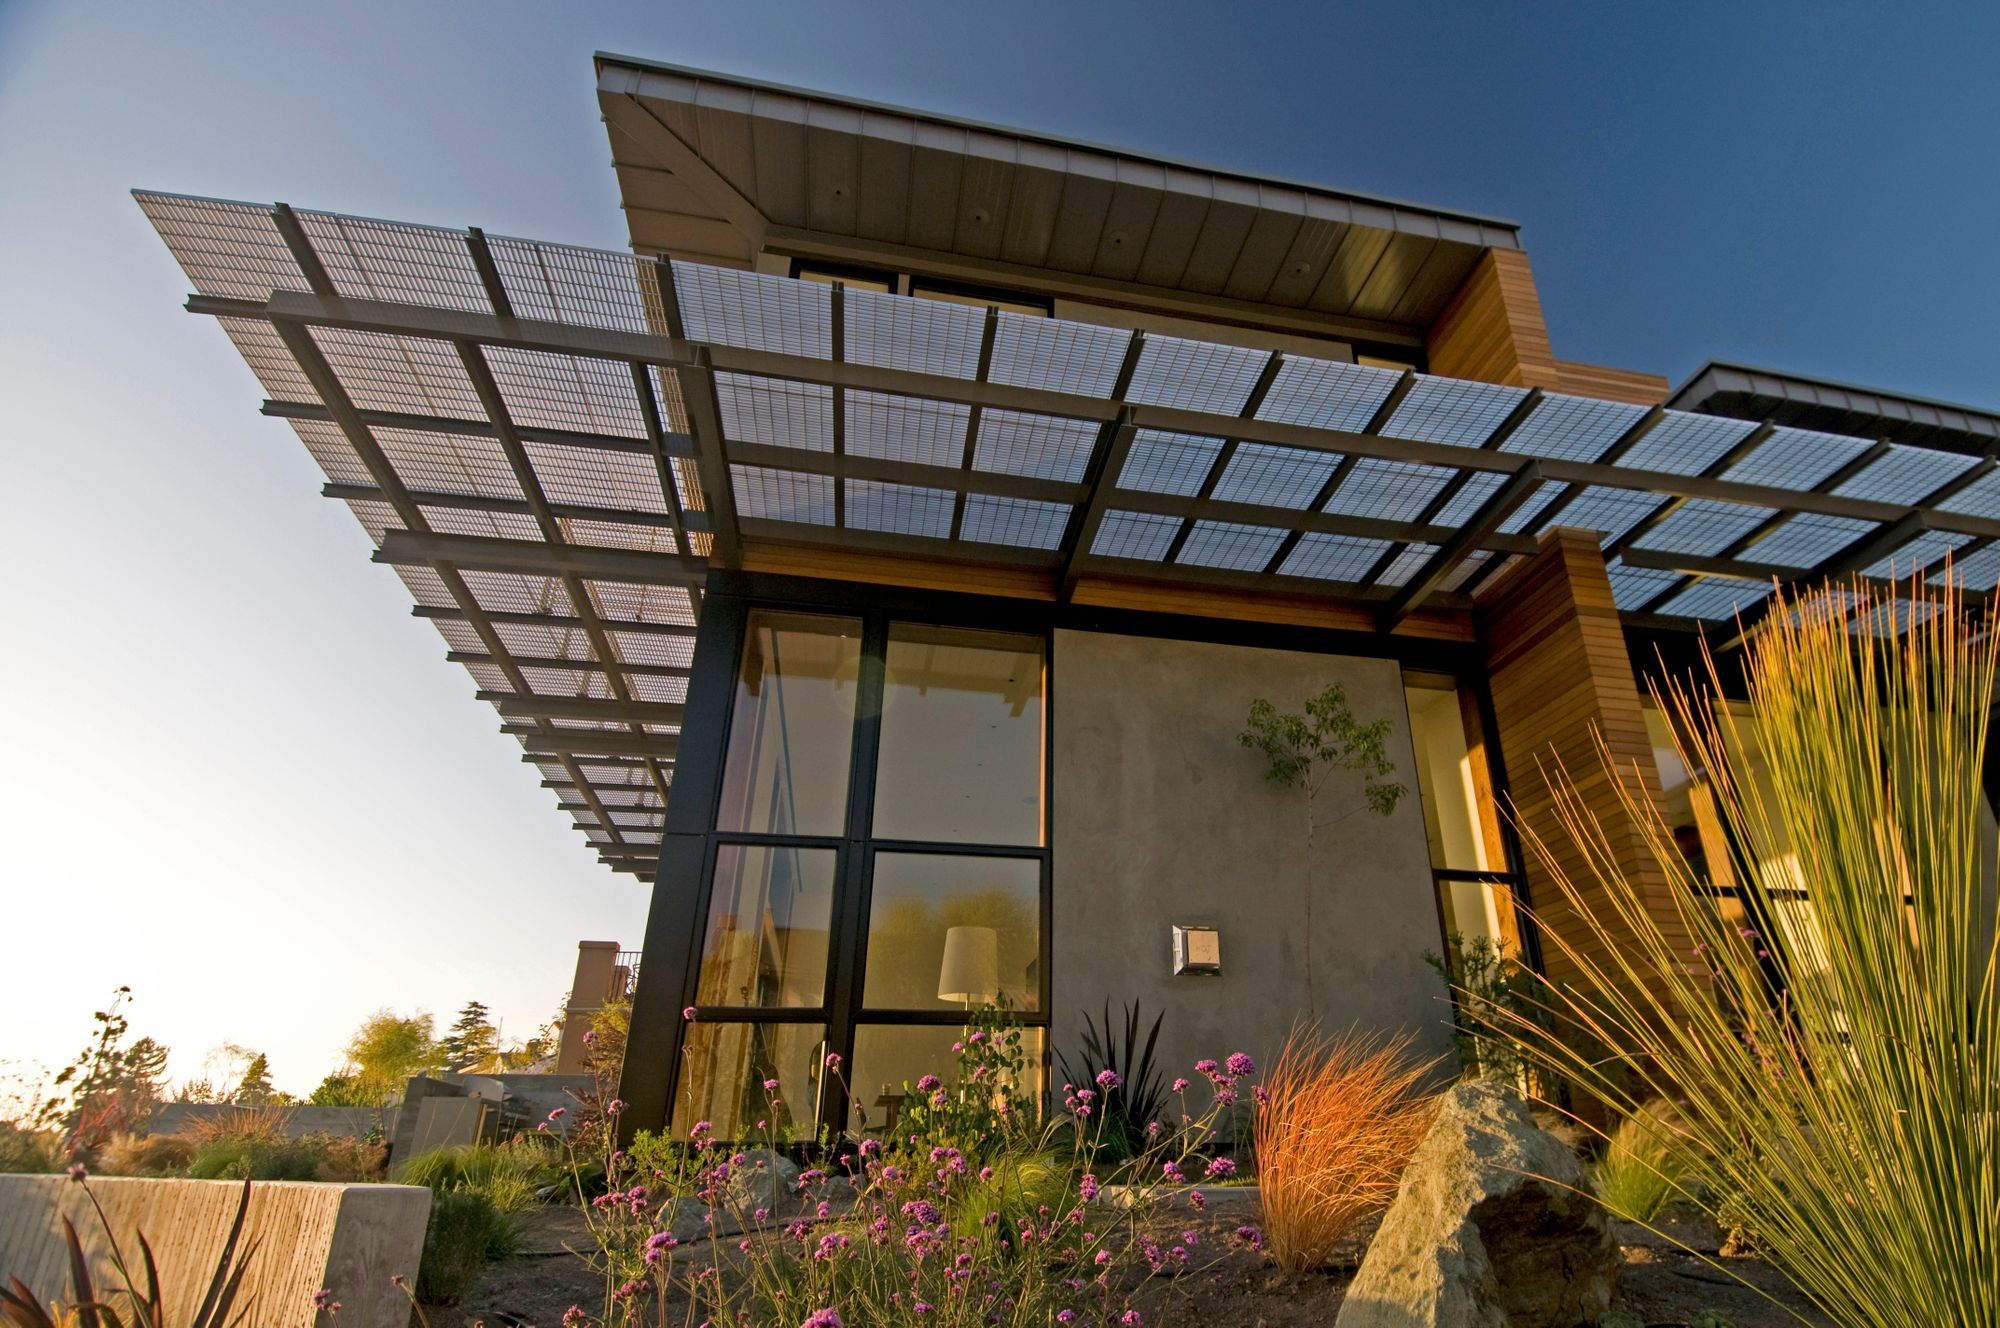 McNICHOLS® aluminum bar grating used for a home's eco-friendly cooling system